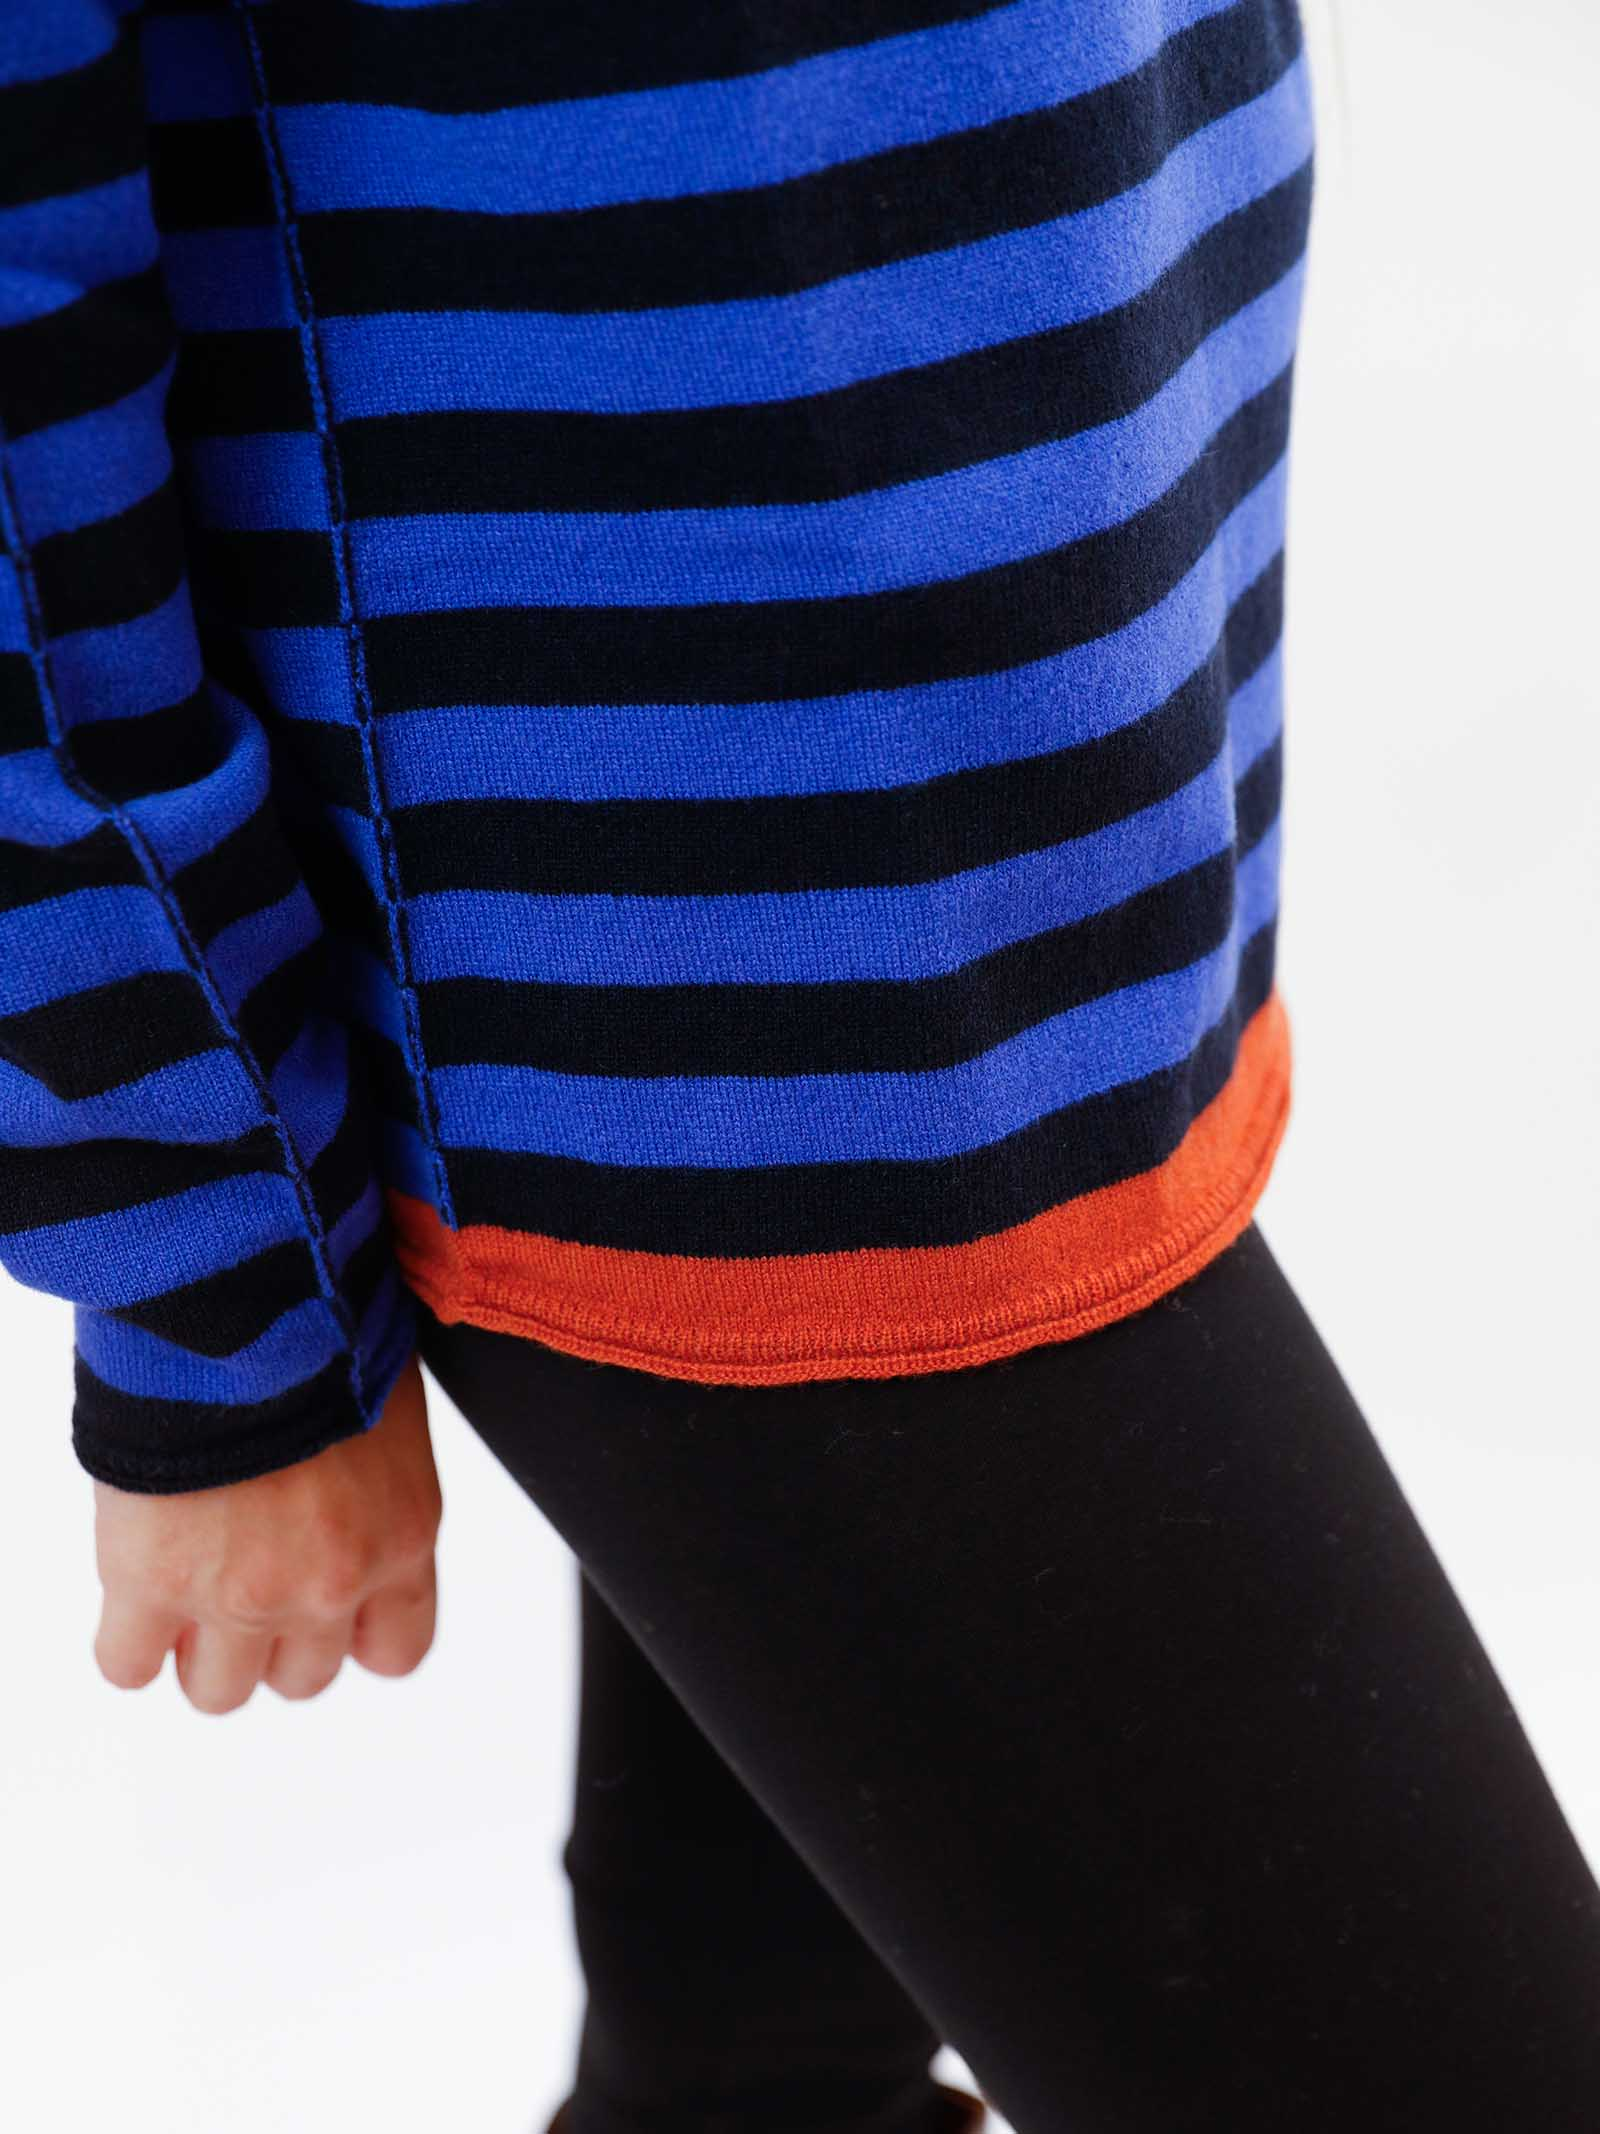 Women's Clothing Sweater in Blue and Black Striped Wool & Cashmere with Wide Neckline Maliparmi   Knitwear   JQ48787050680B80